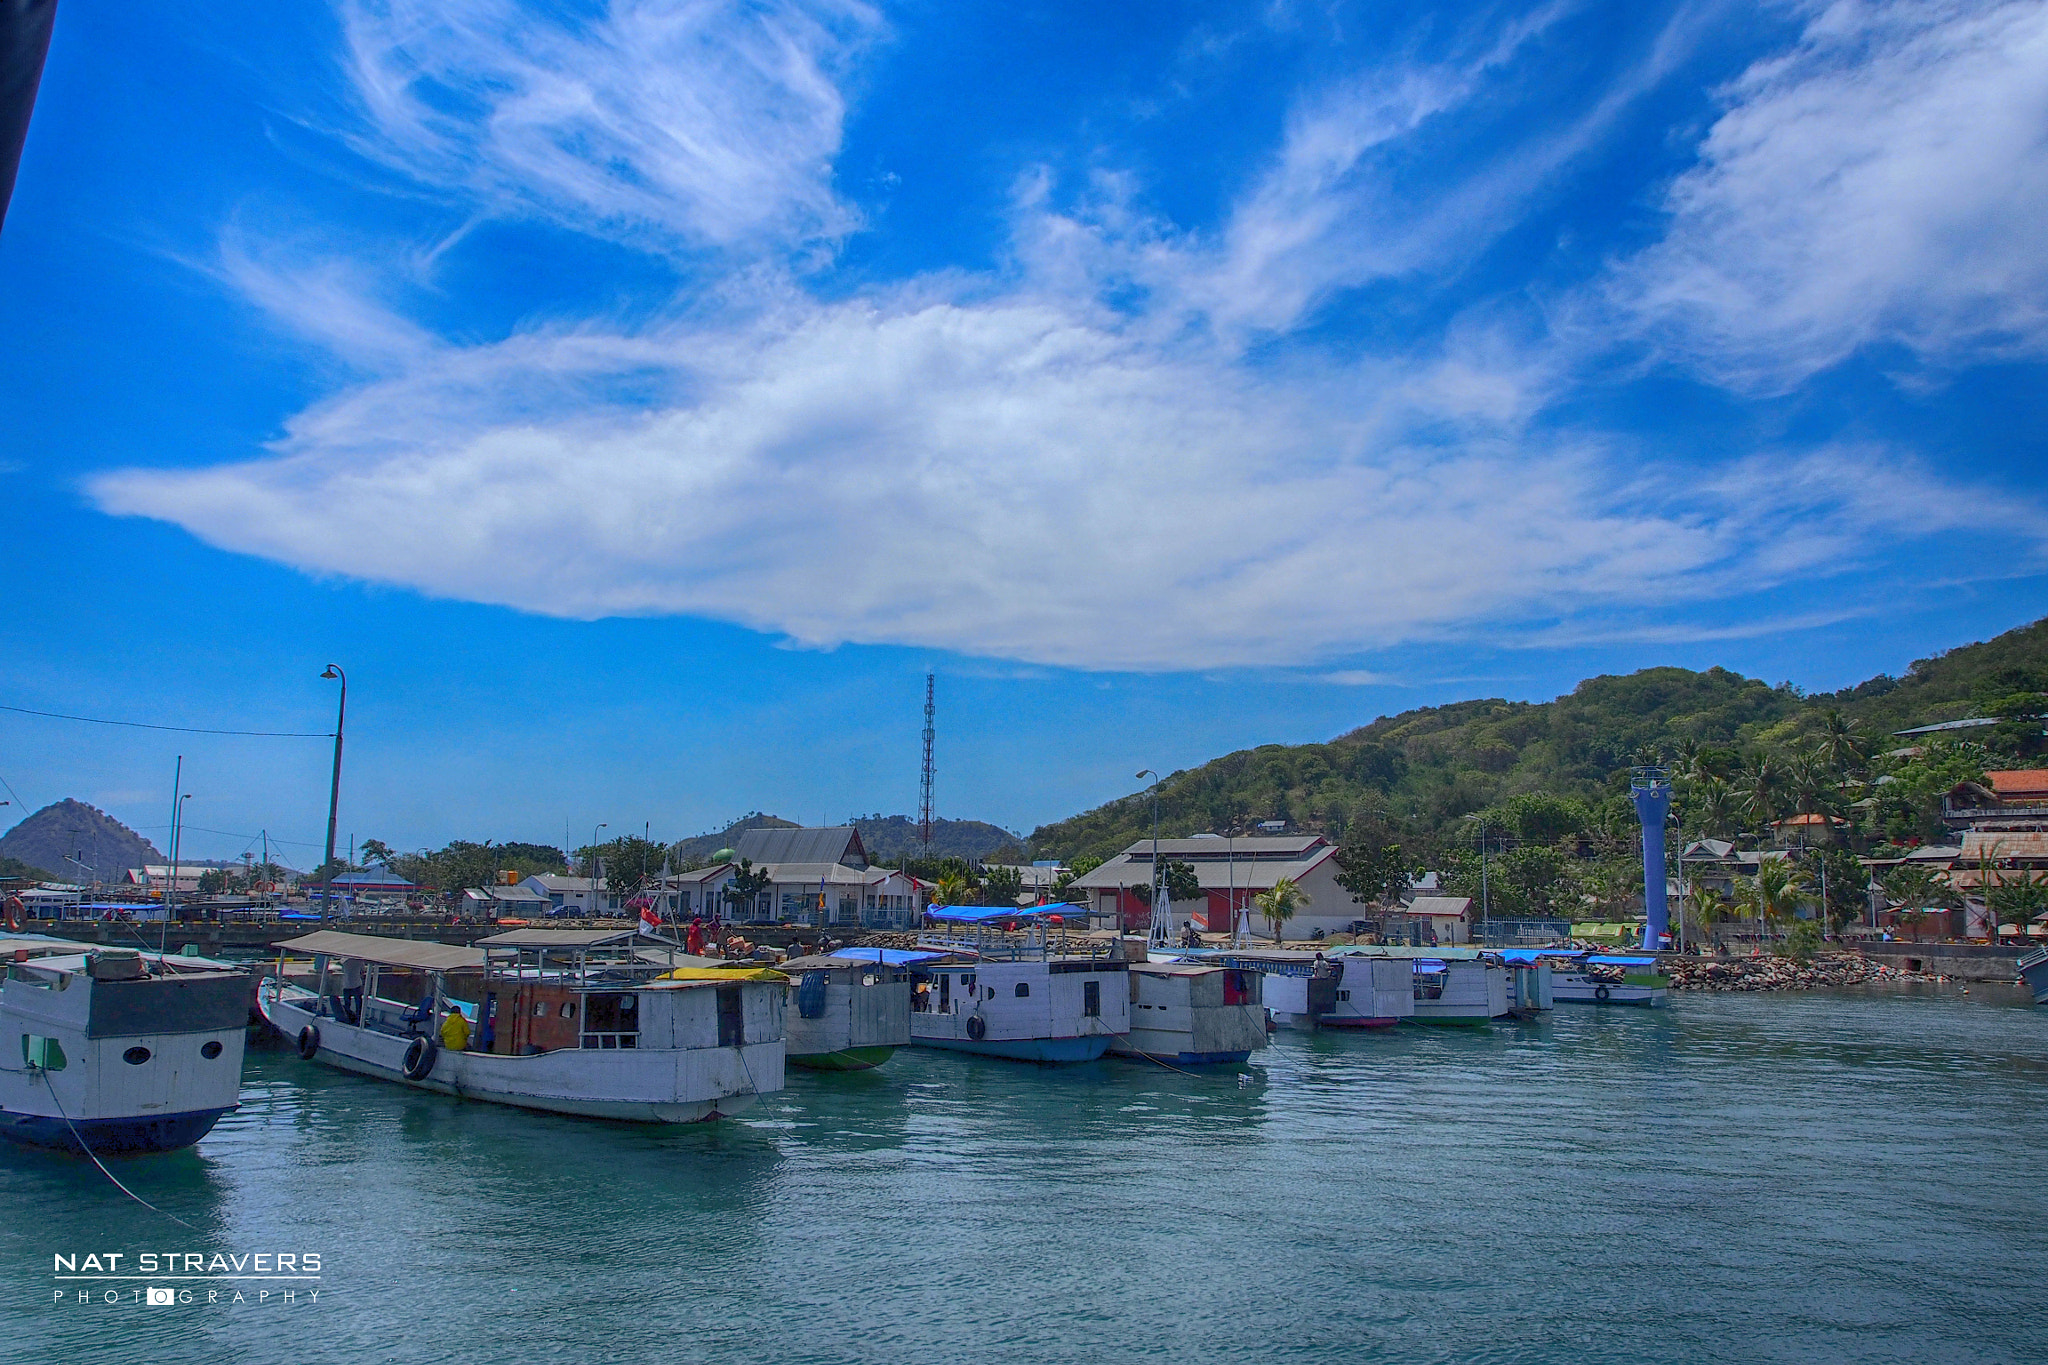 Photograph Labuan Bajo Port by Nathalie Stravers on 500px